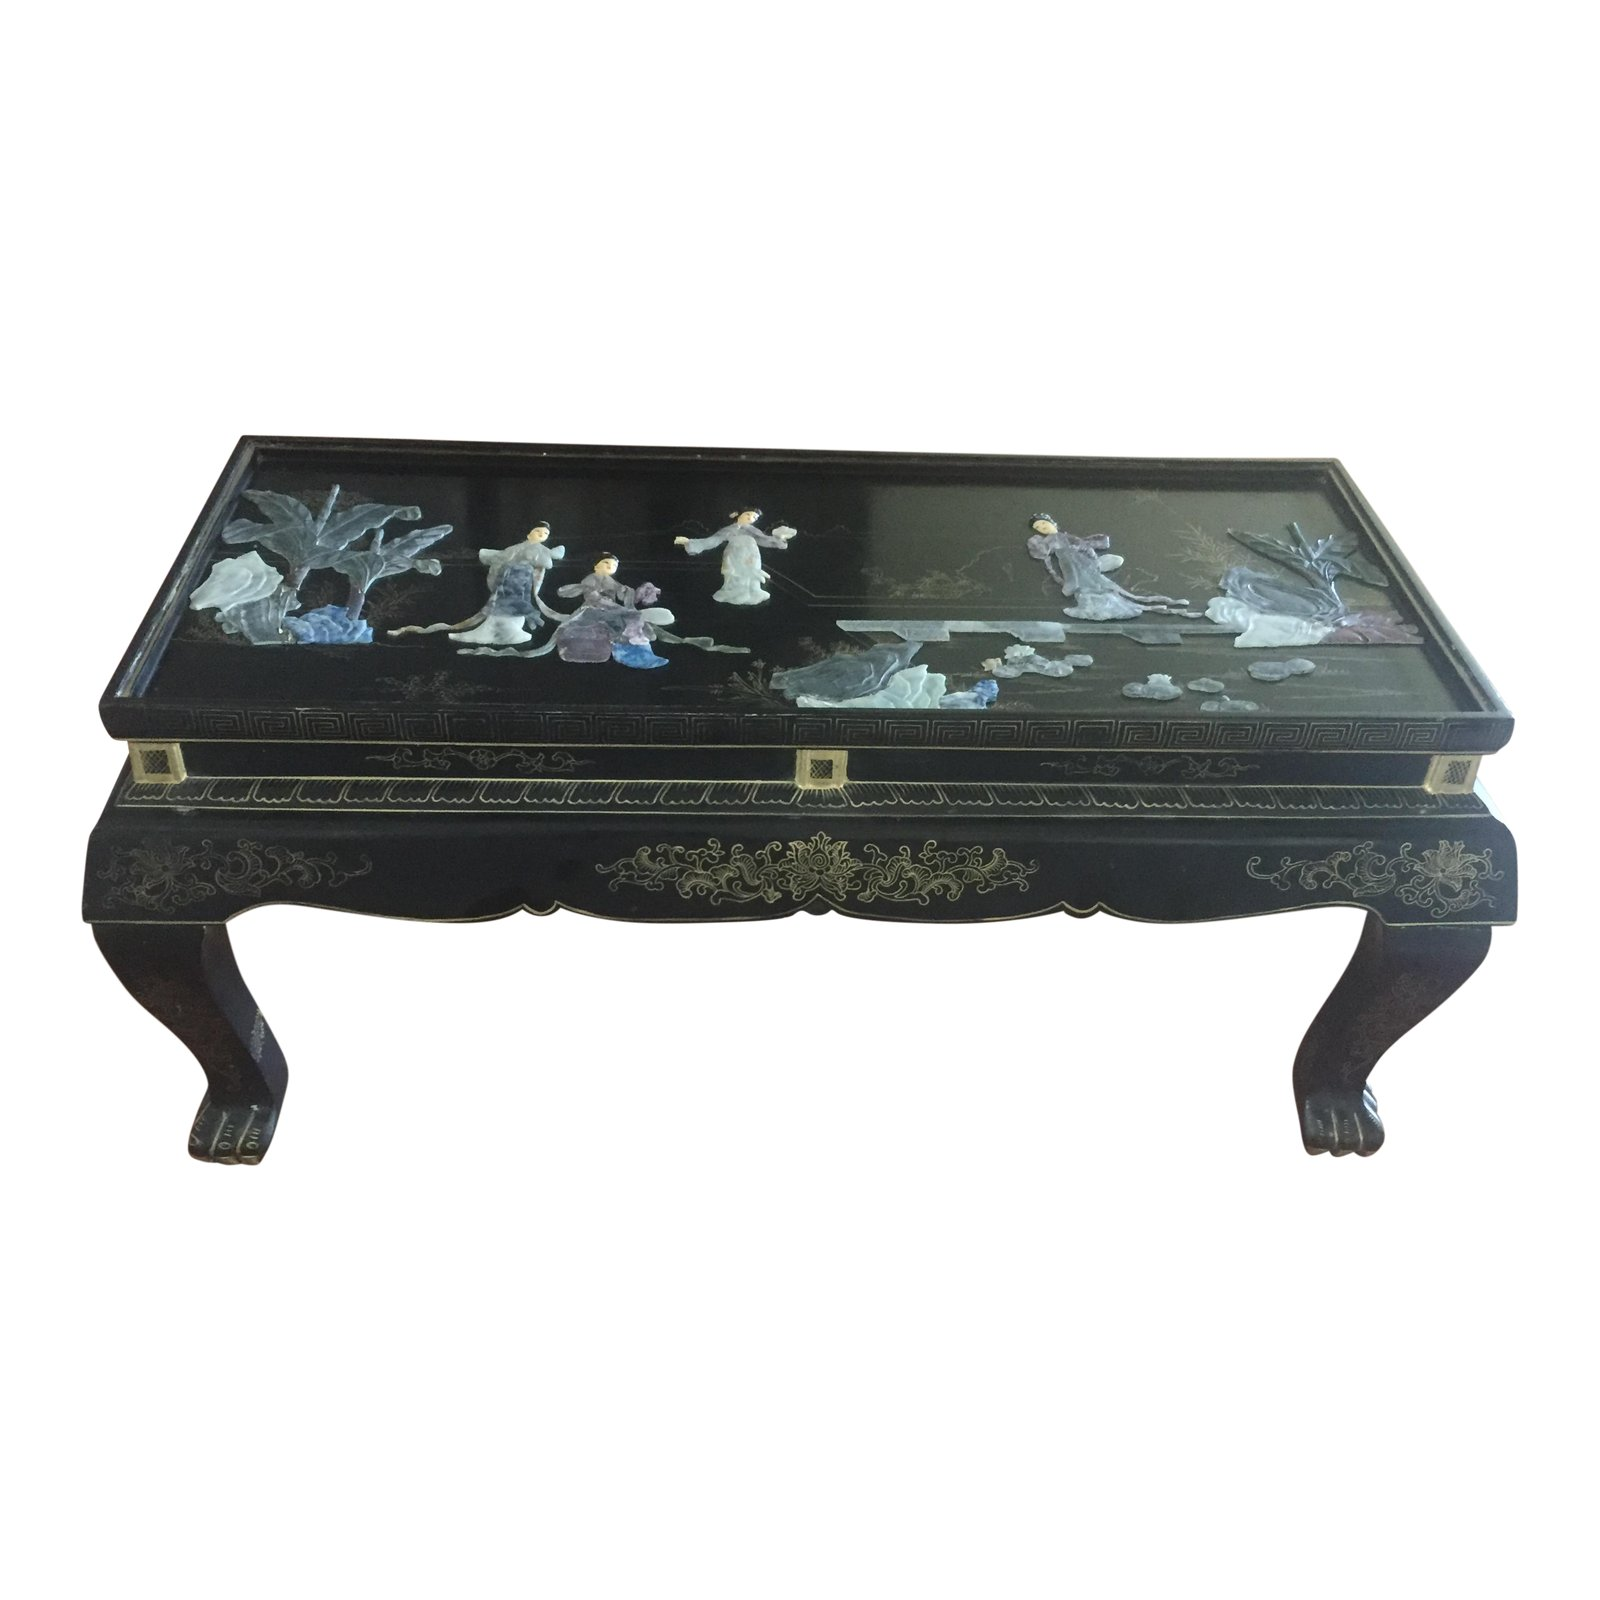 vintage chinese black lacquer chinoiserie folding coffee table accent chairish modern wooden designs cool end ideas inch high truck tool box tablecloths and placemats trunk round